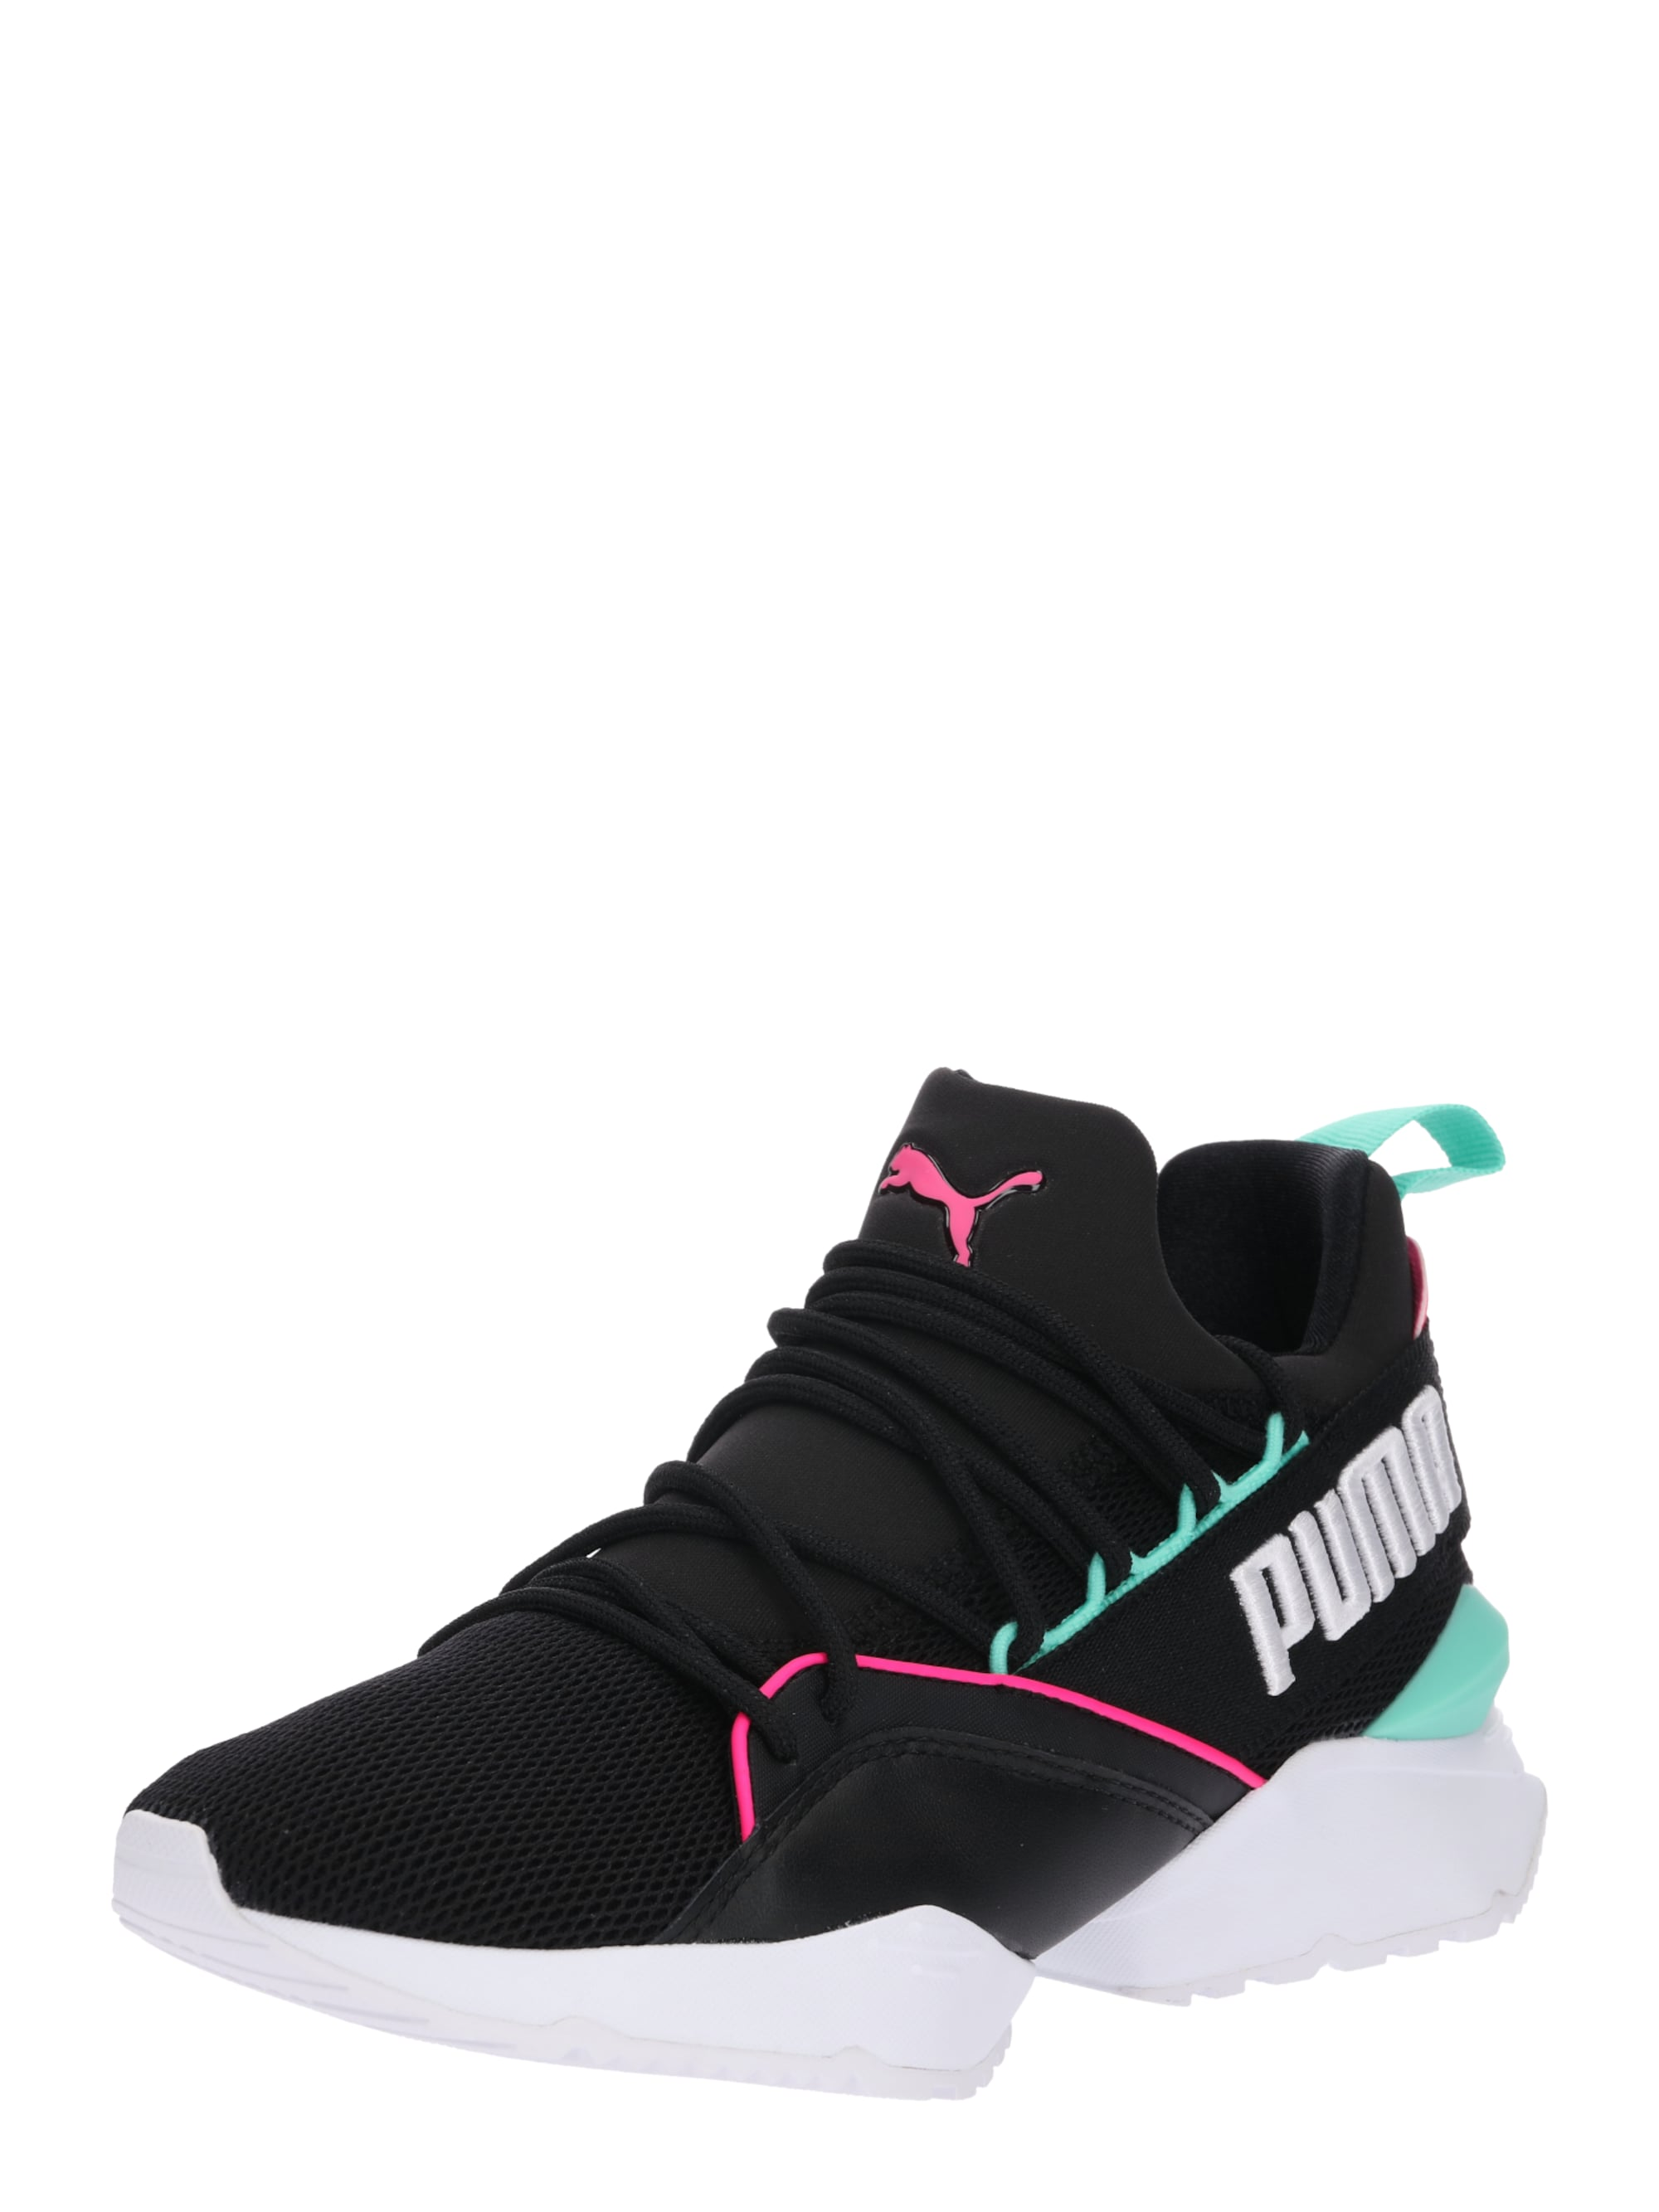 Sneaker ´Muse Maia Chase´